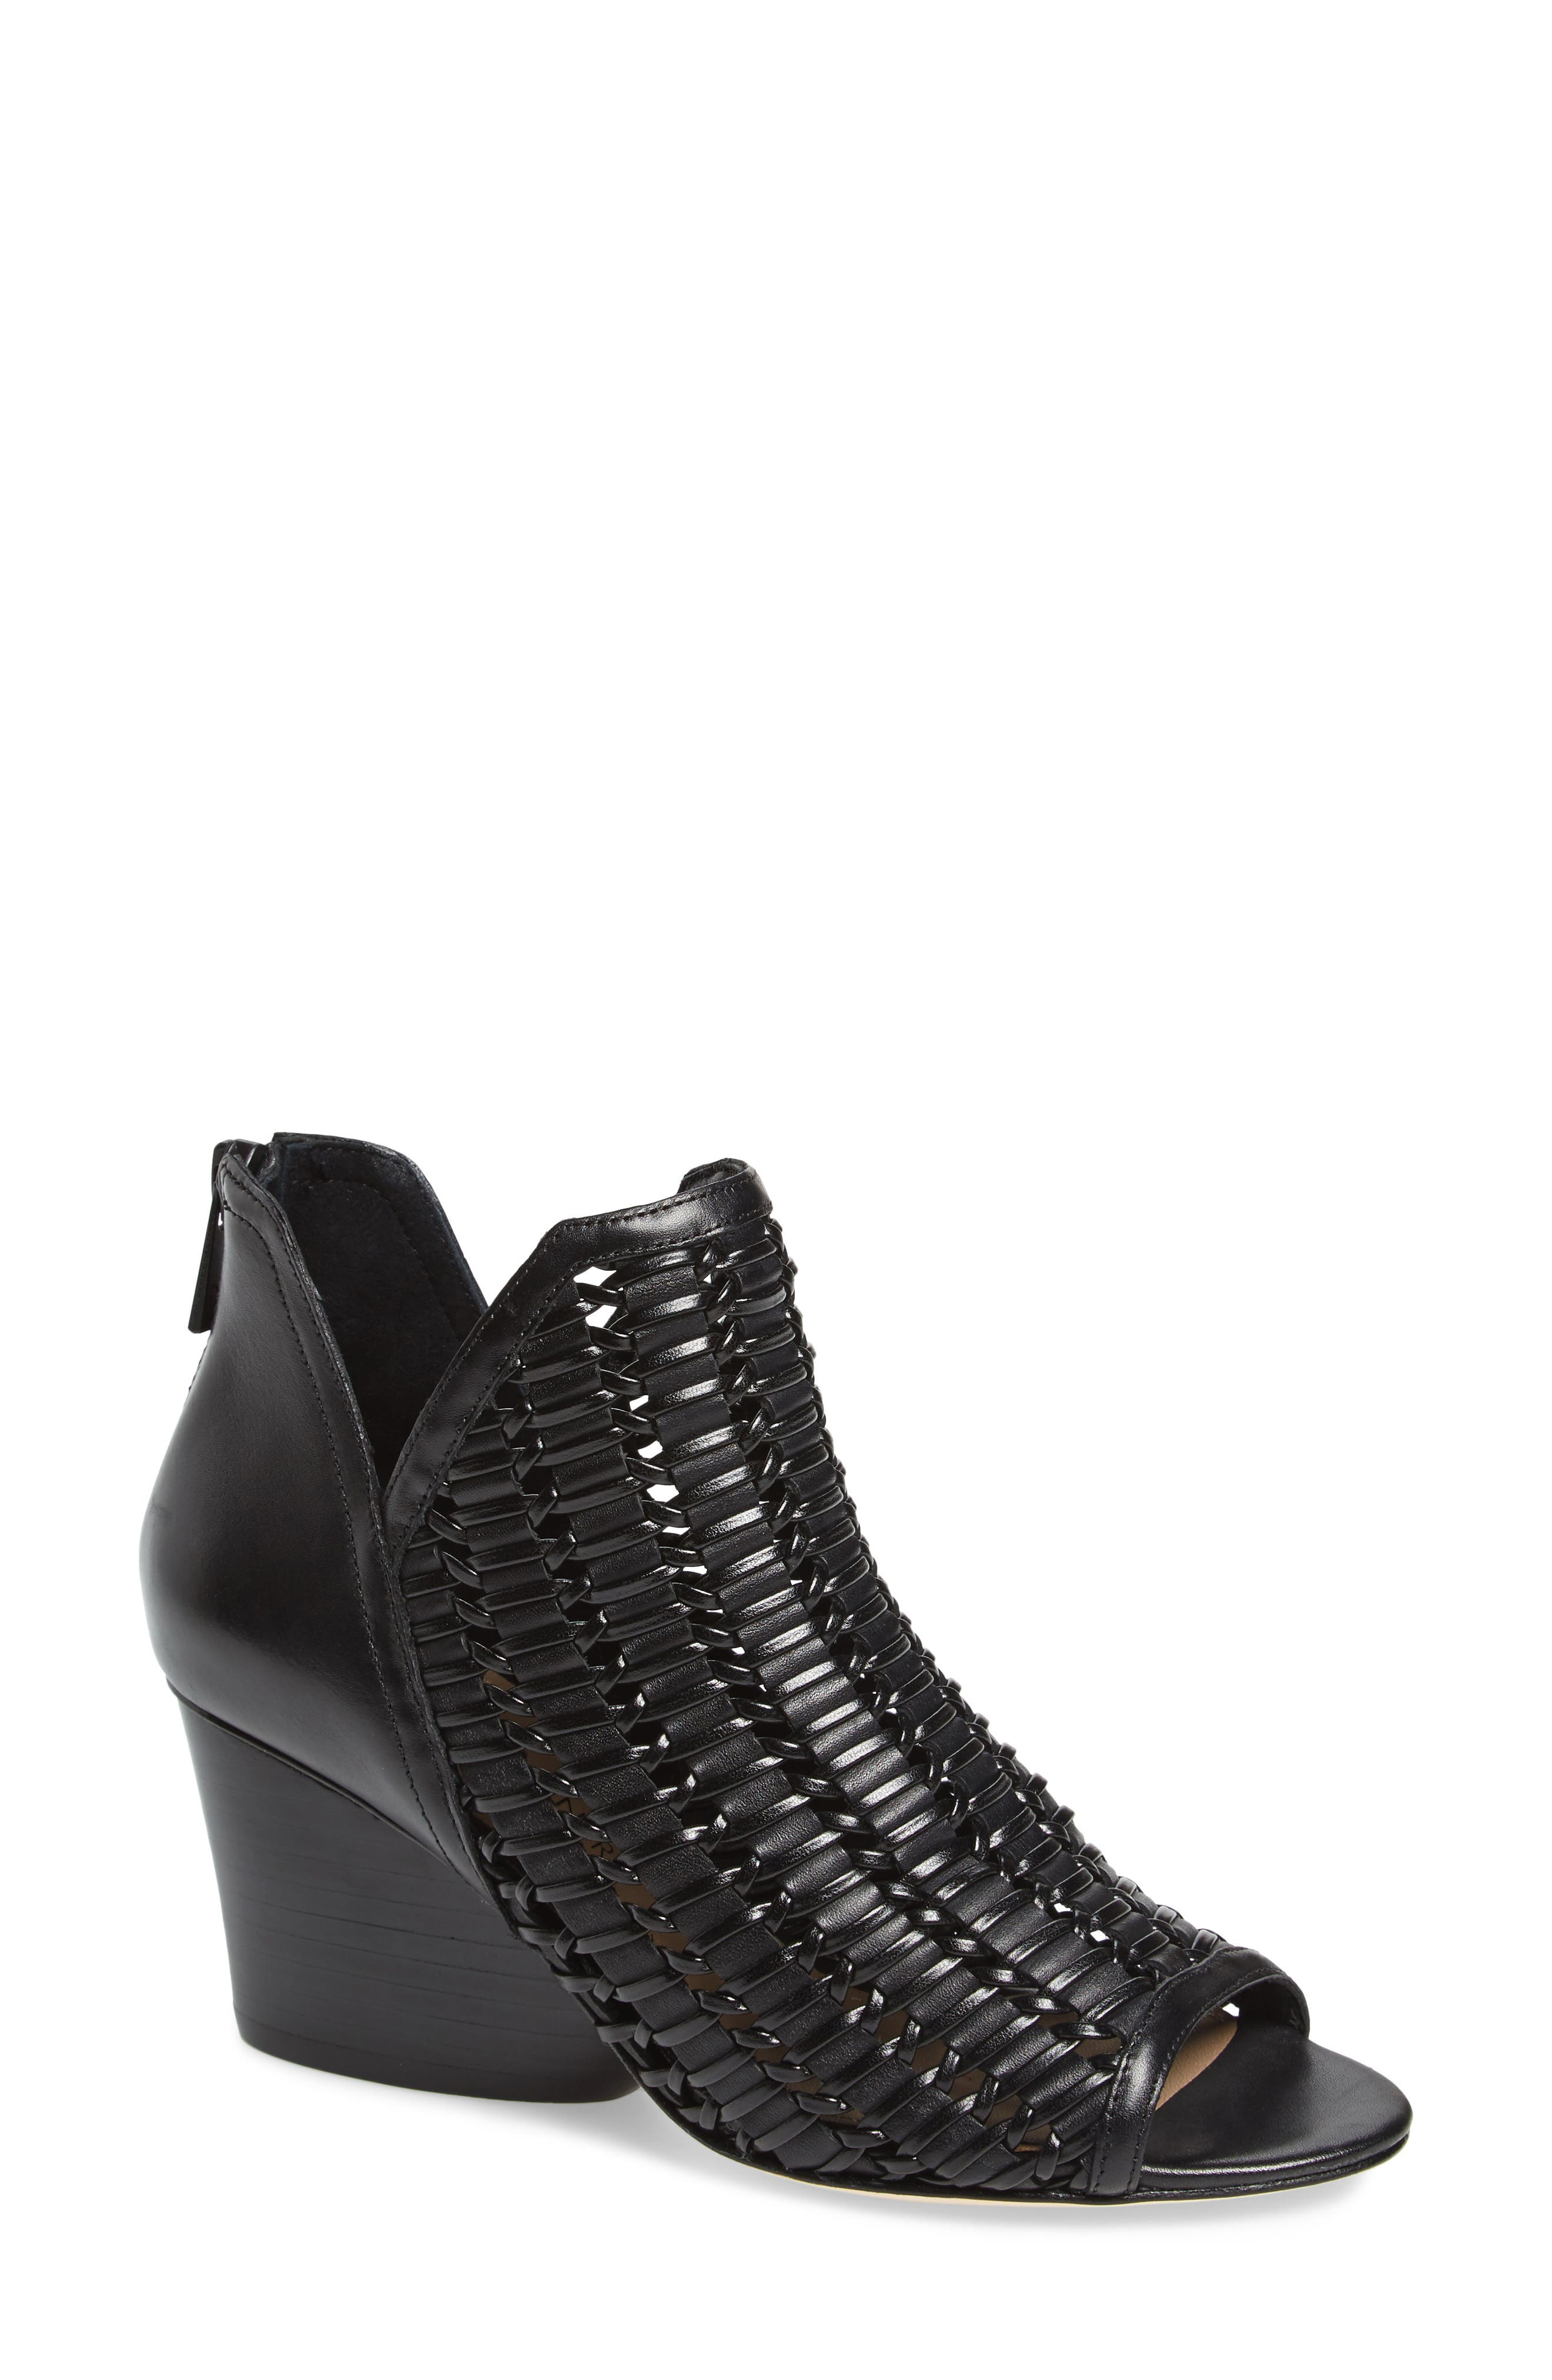 Jacqi Woven Open Toe Bootie,                         Main,                         color, Black Leather